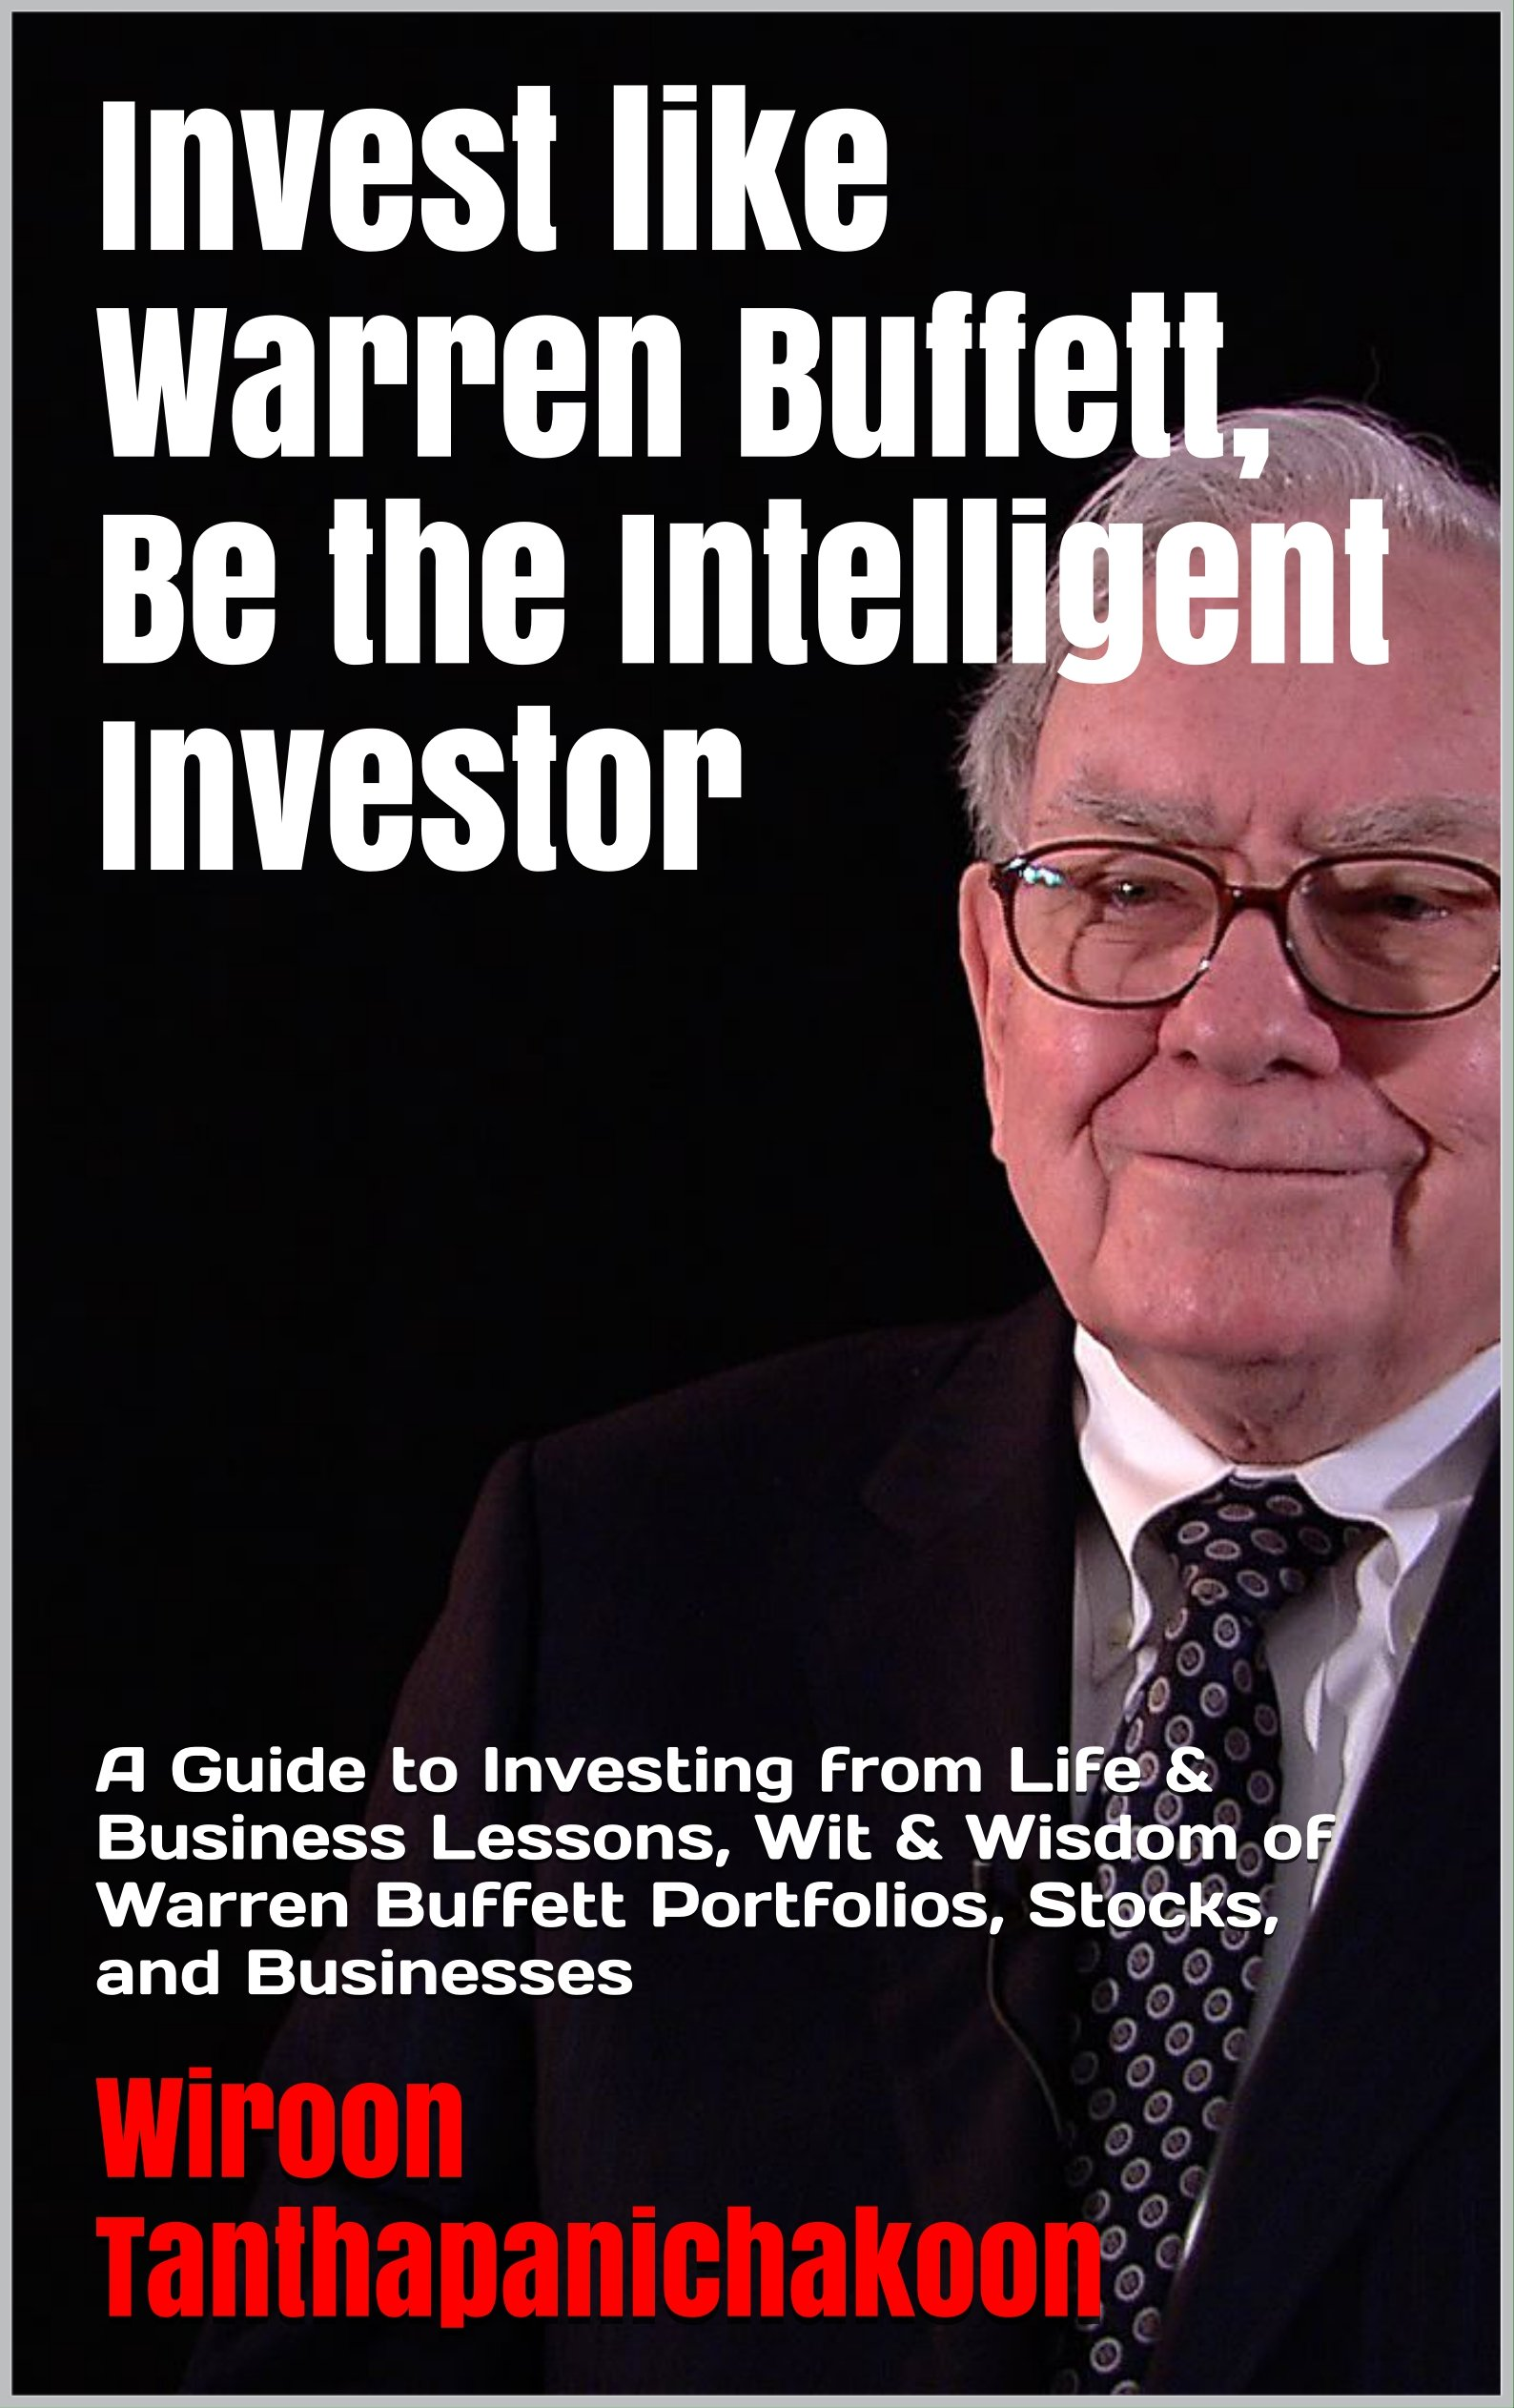 Invest like Warren Buffett, Be the Intelligent Investor: A Guide to Investing from Life & Business Lessons, Wit & Wisdom of Warren Buffett Portfolios, Stocks, and Businesses